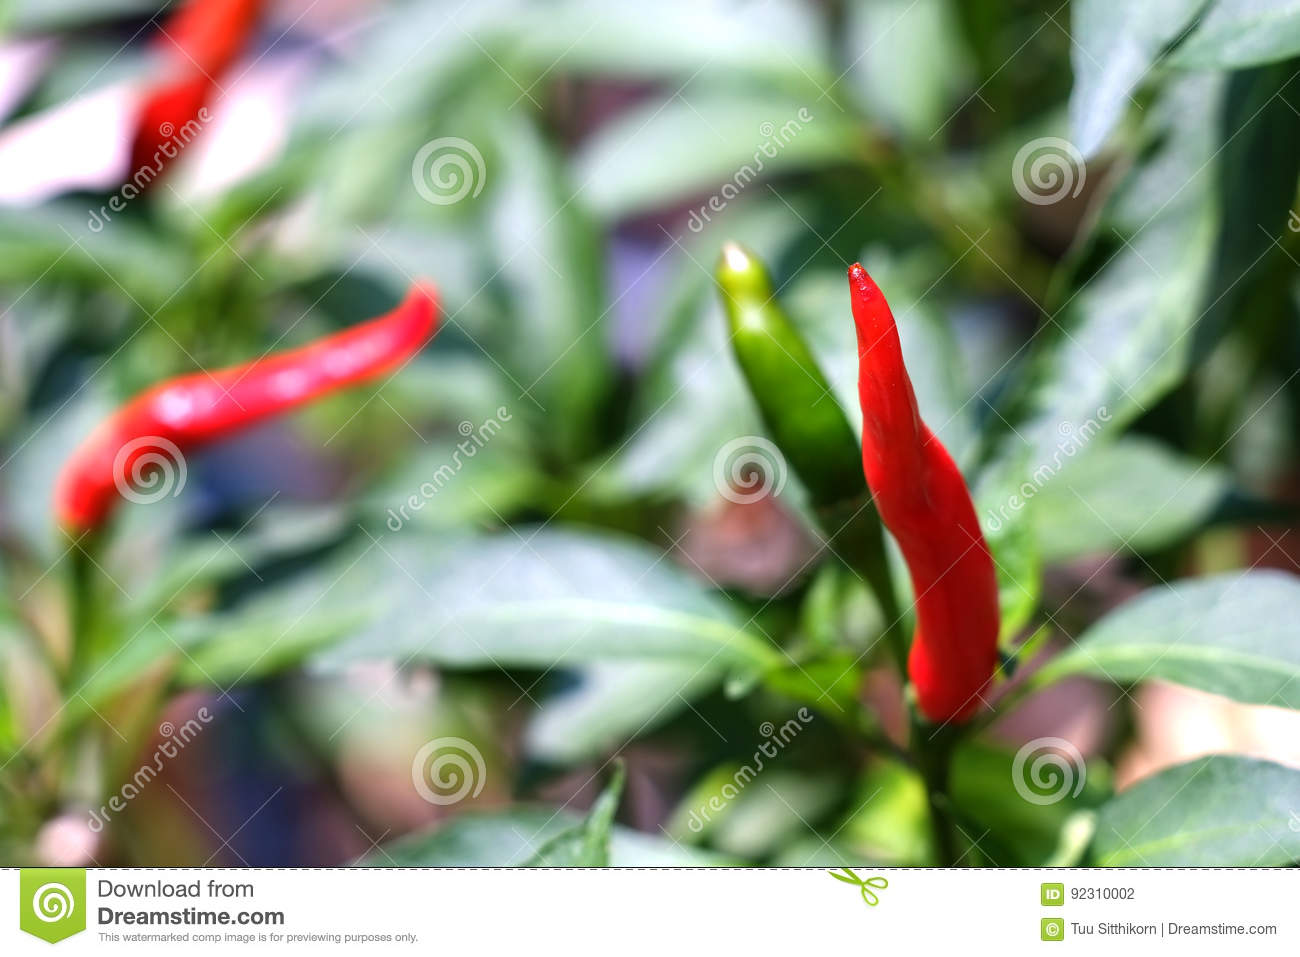 Red and green Bird`s eye chili grow in the garden